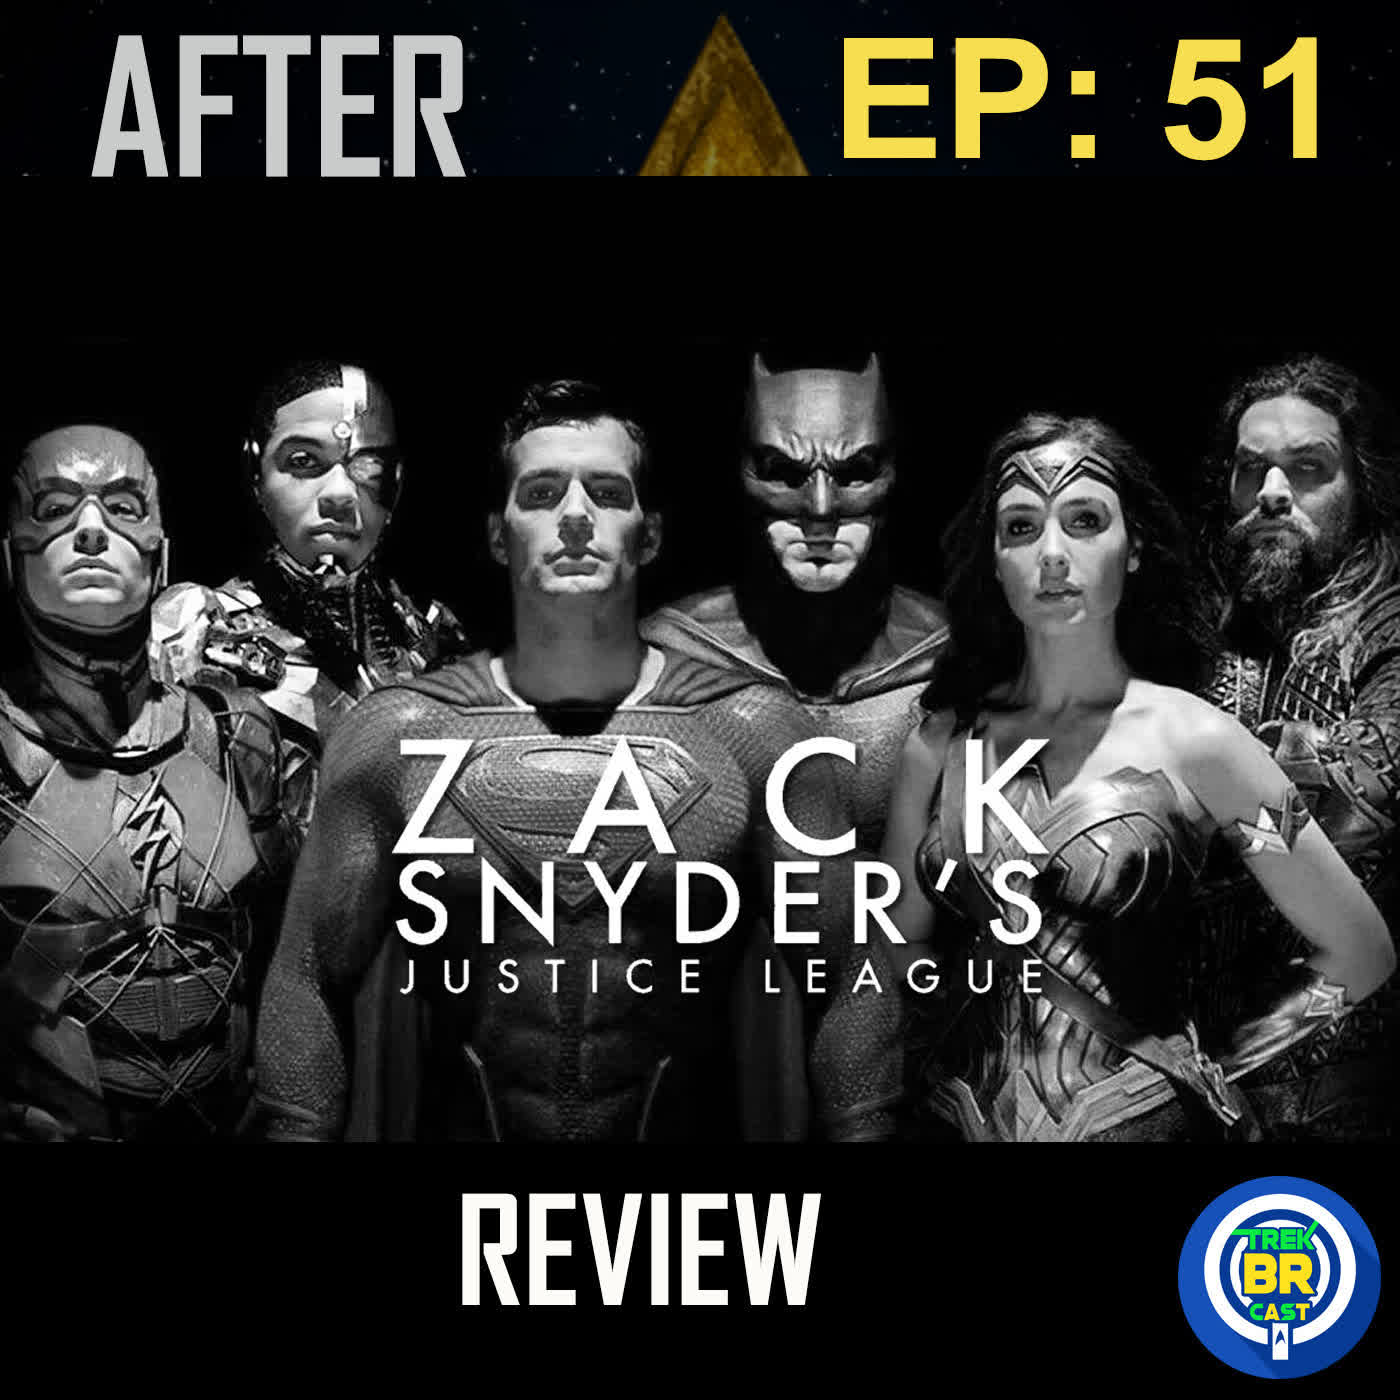 Zack Snyder's Justice League: Review - AFTER 51